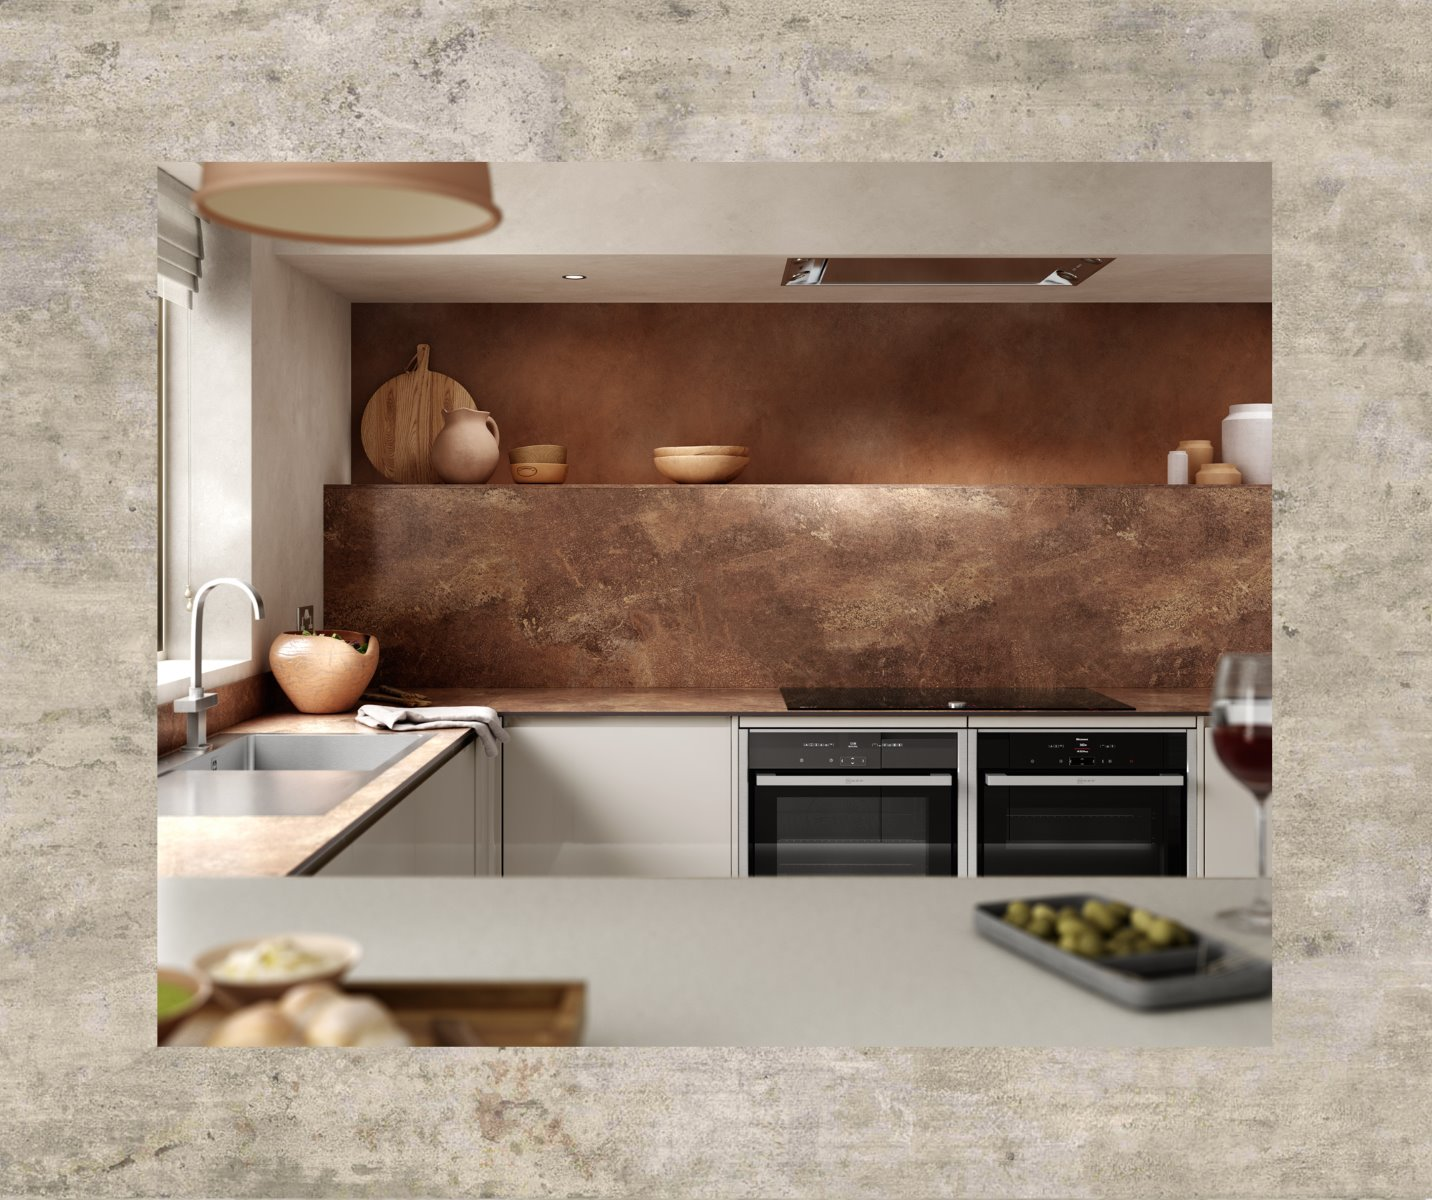 Terracotta textured kitchen zenith